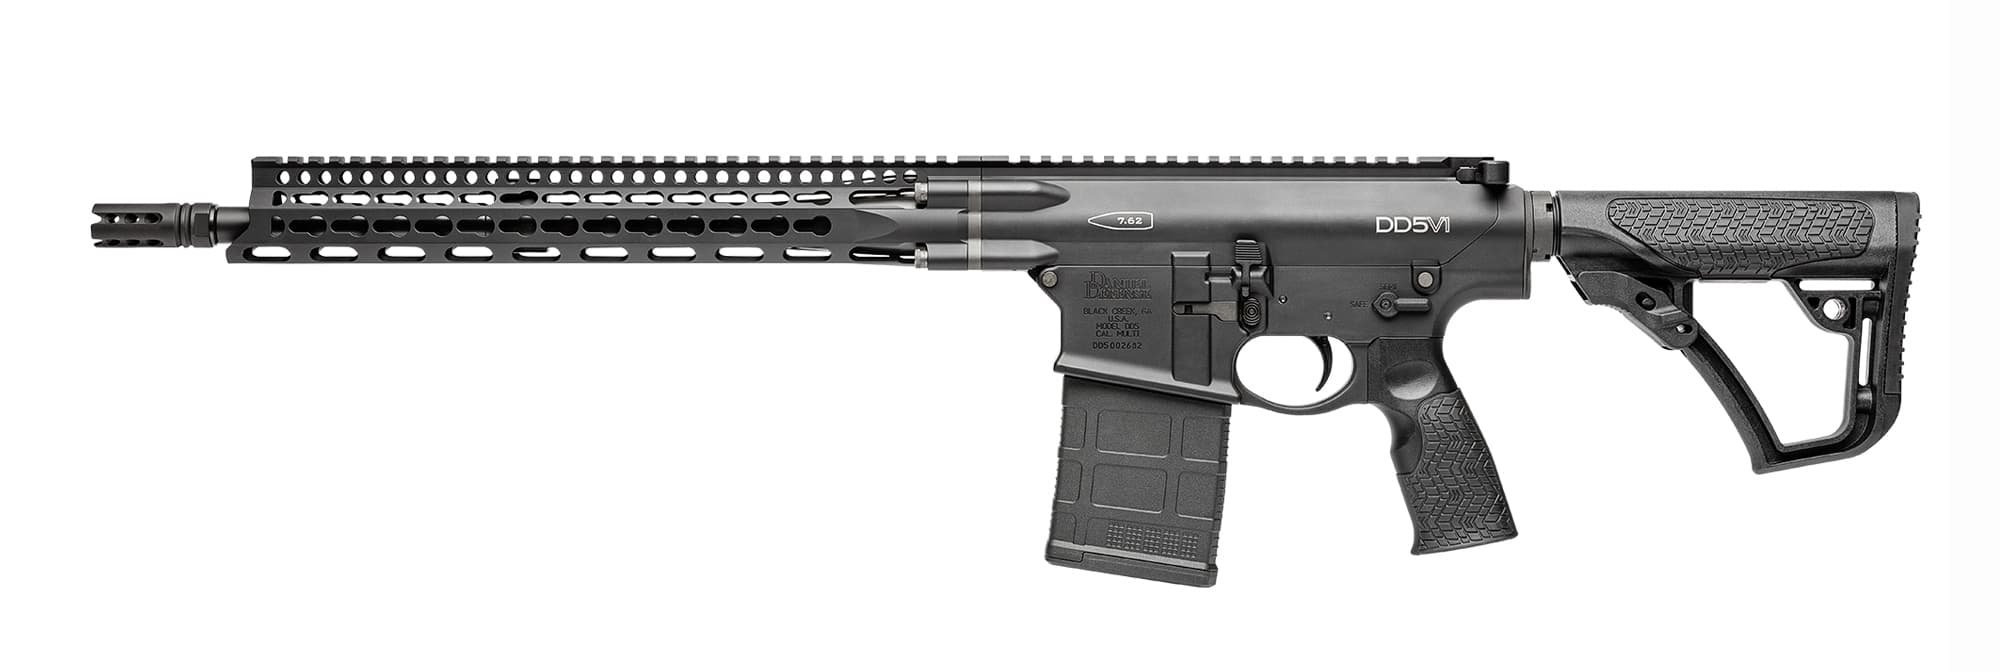 Daniel Defense DD5 V1 AR-10 Rifle